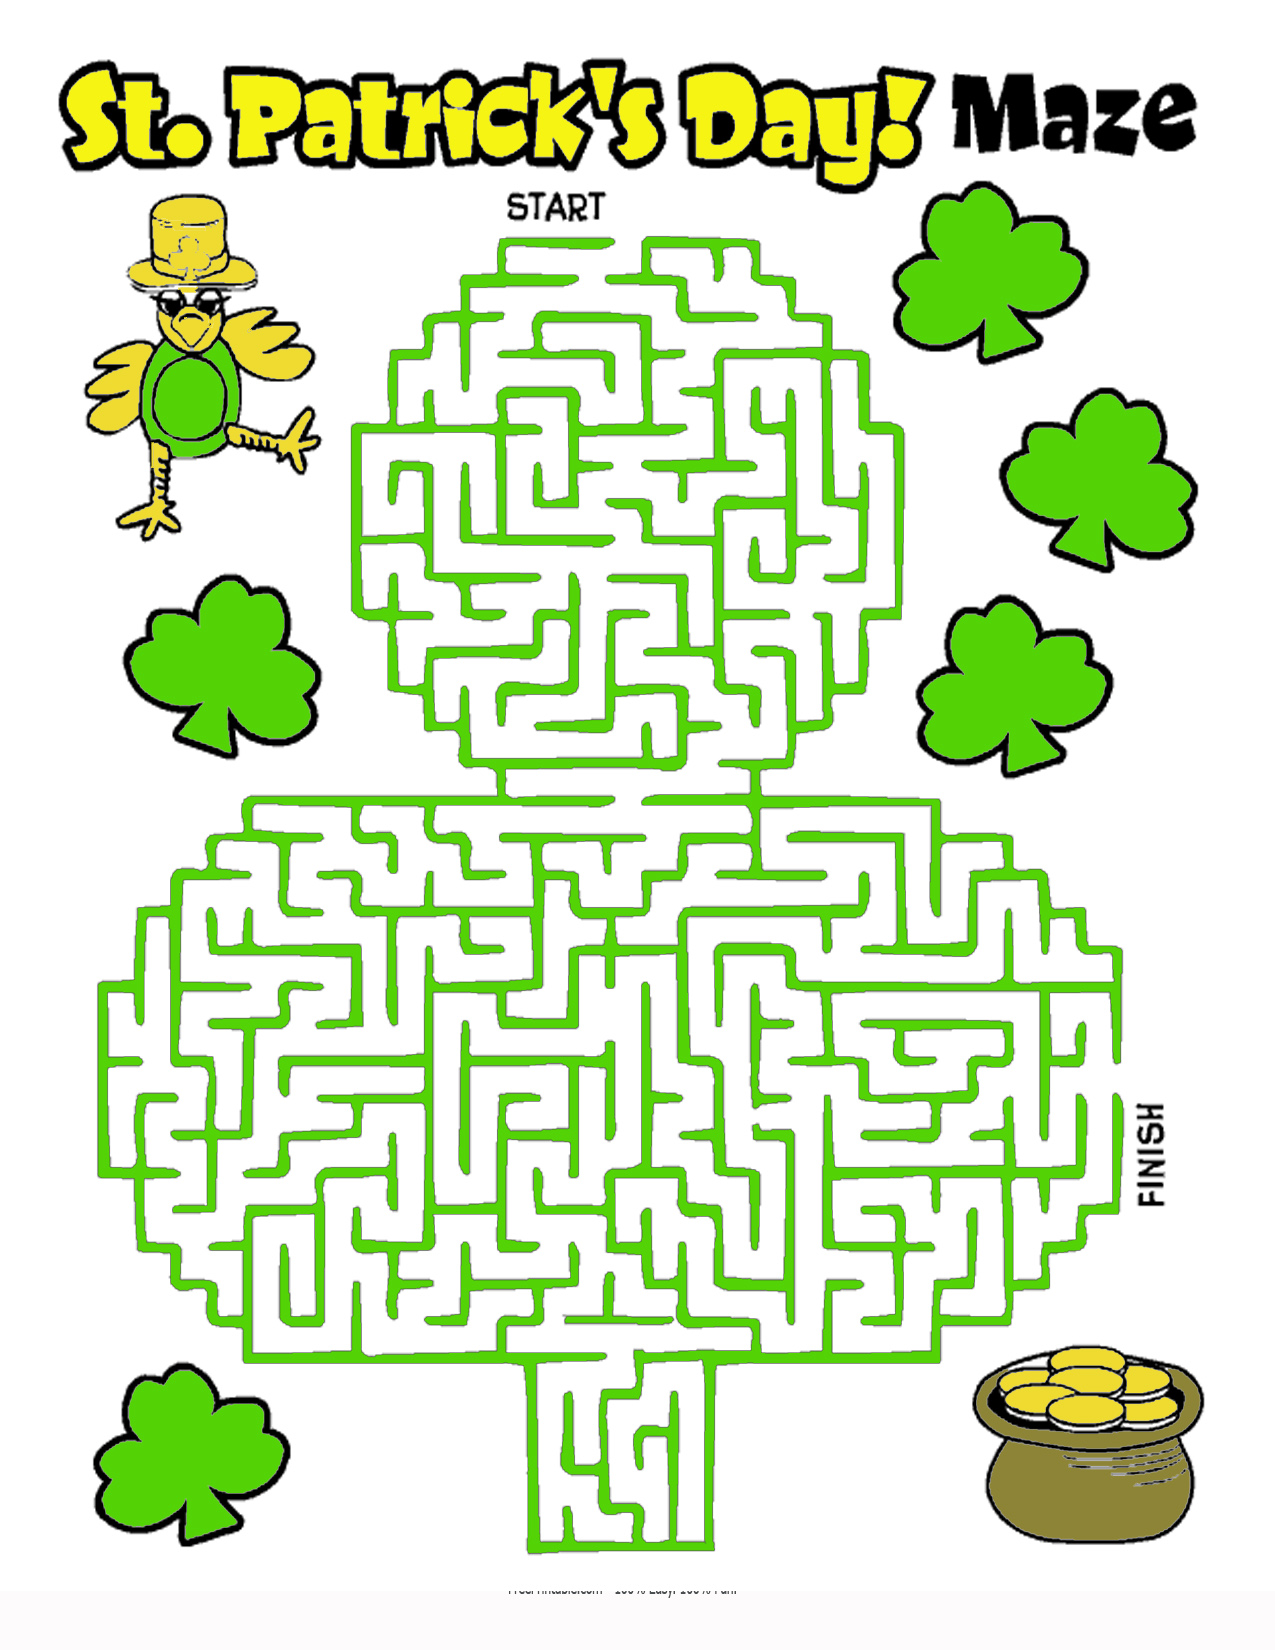 St. Patrick's Day Maze Images & Pictures - Findpik